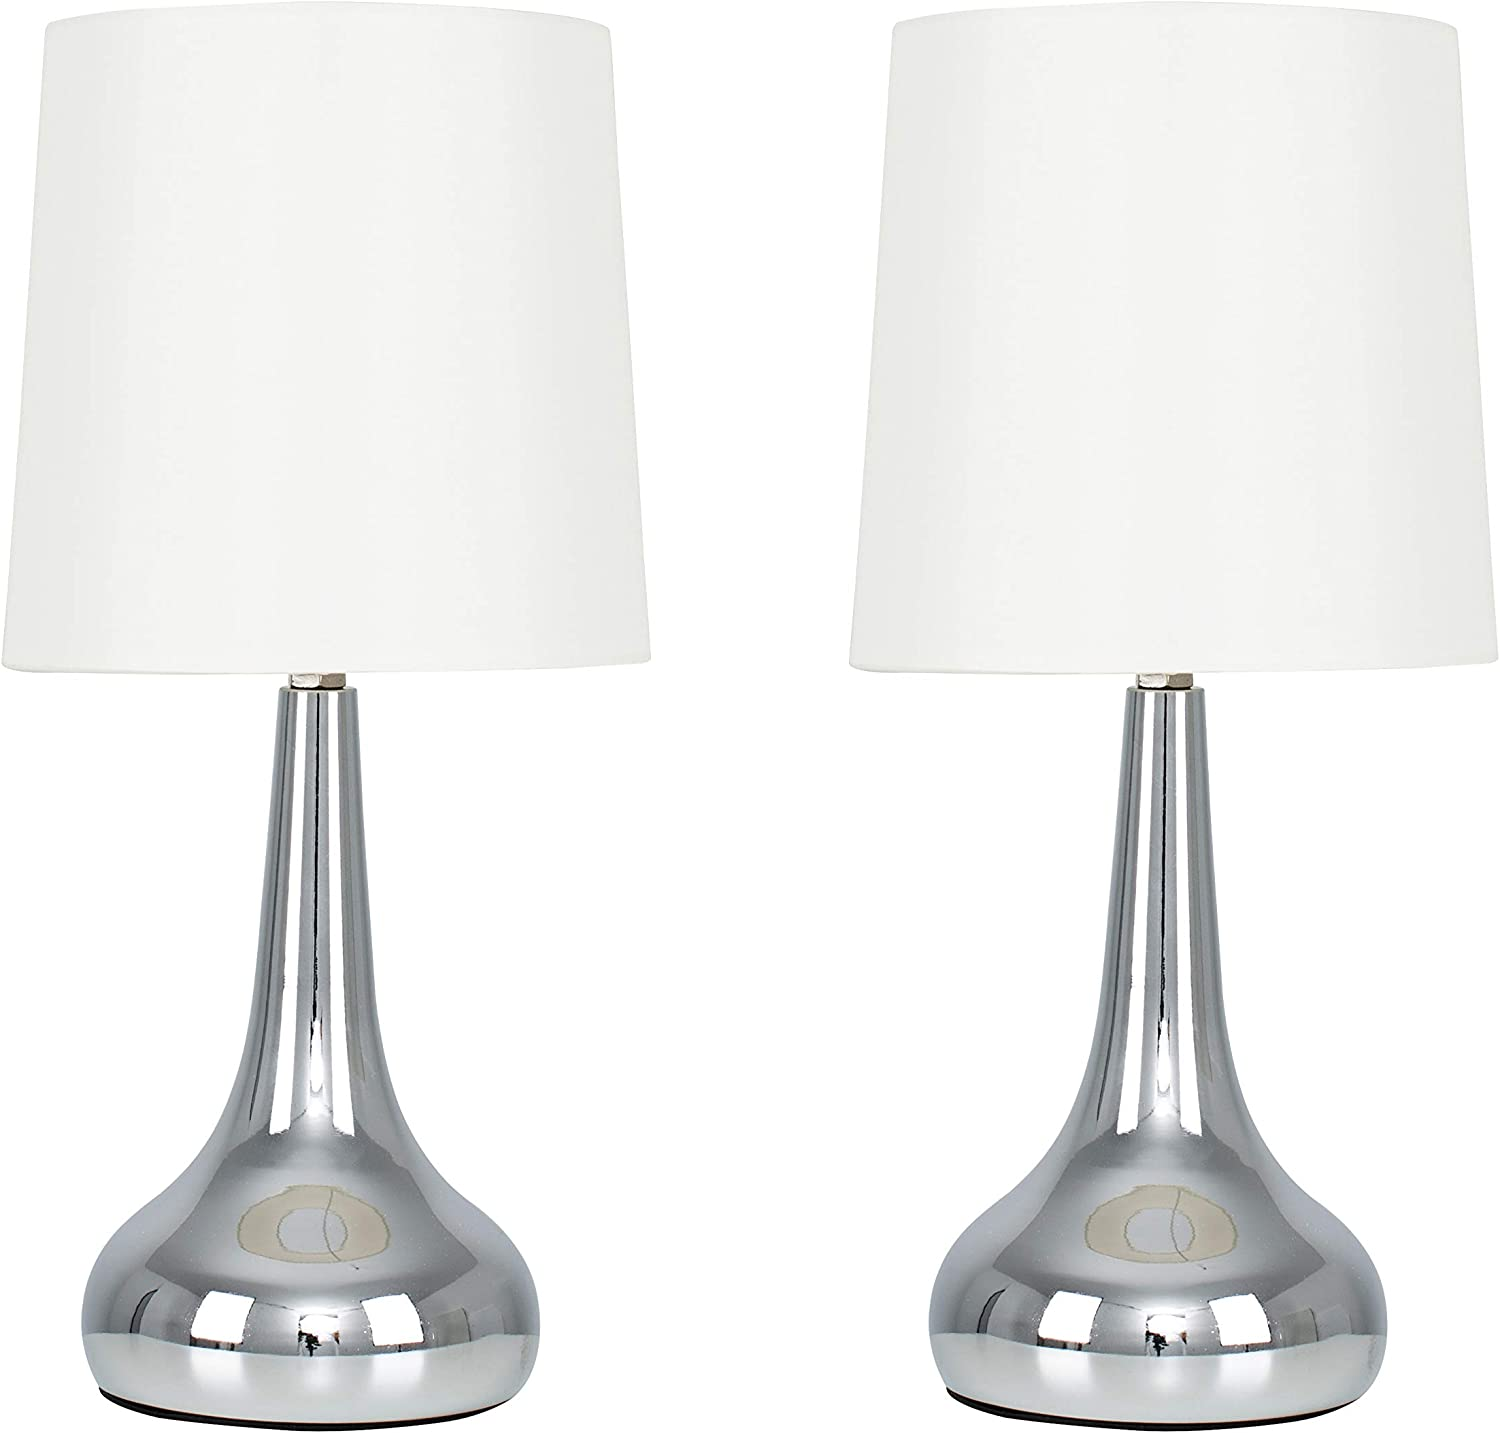 small table lamps that you can choose the brightness of